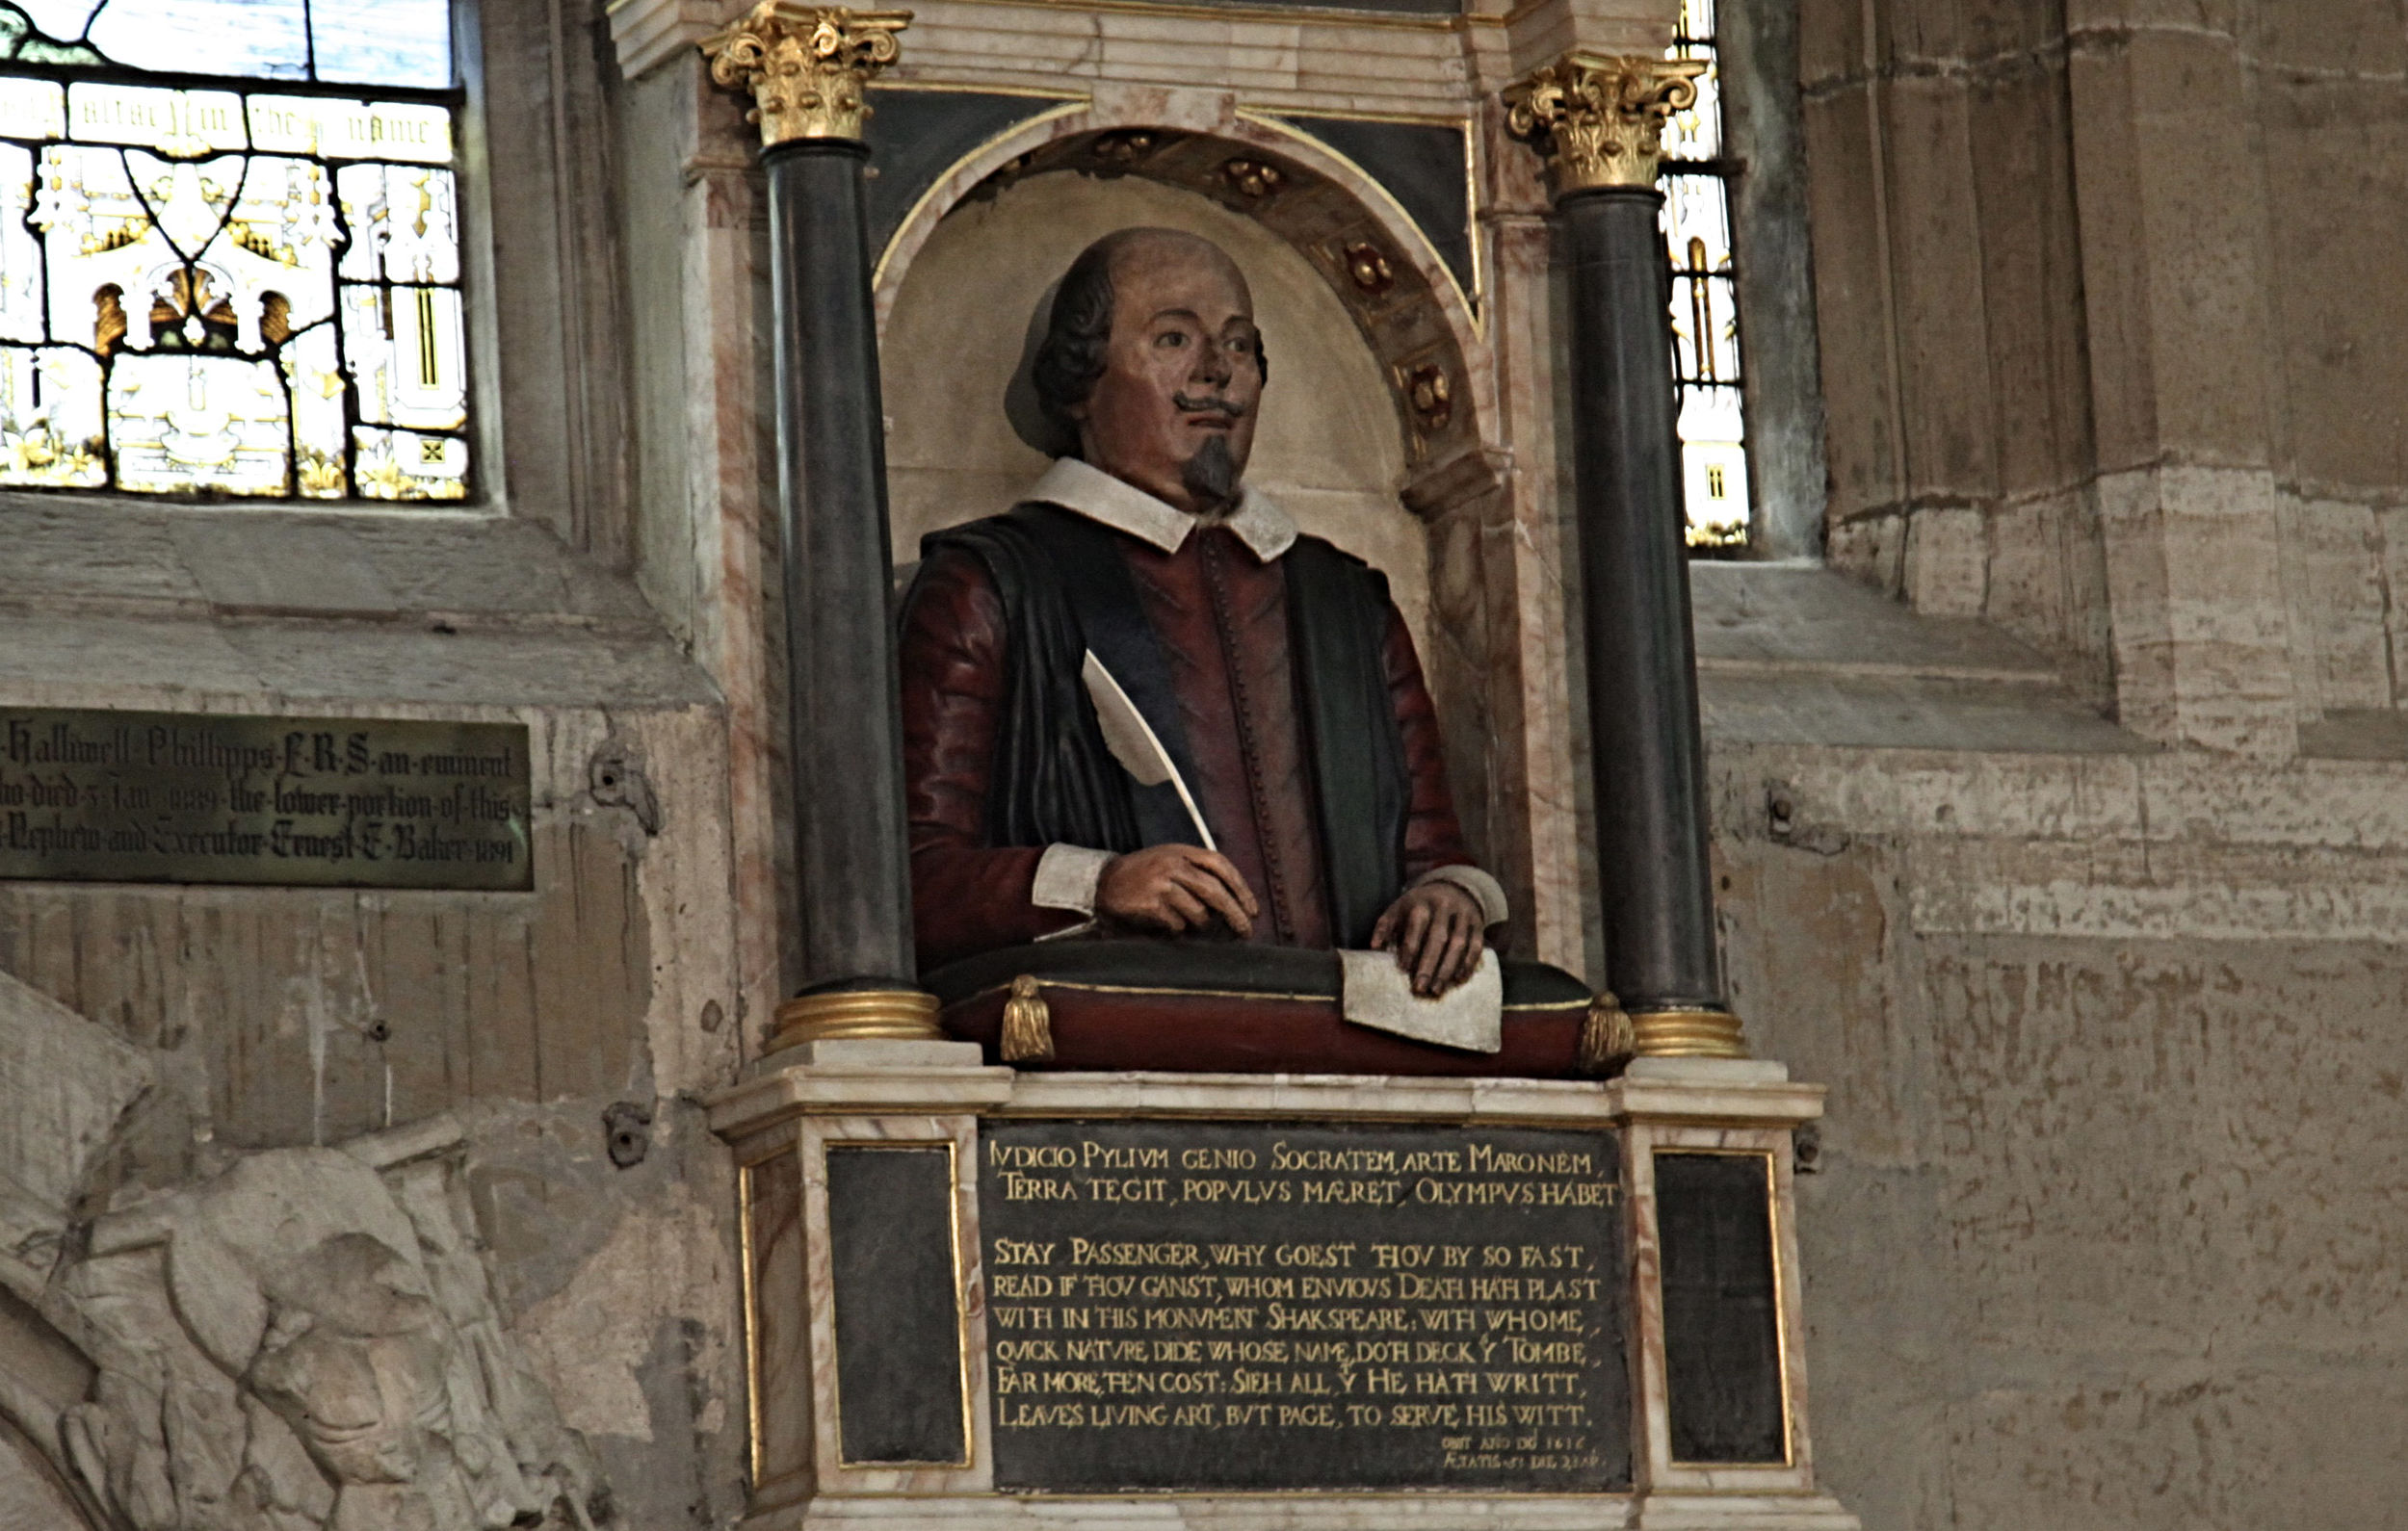 Monument in the chancel of Holy Trinity Church                                                                             ©Edward Burman